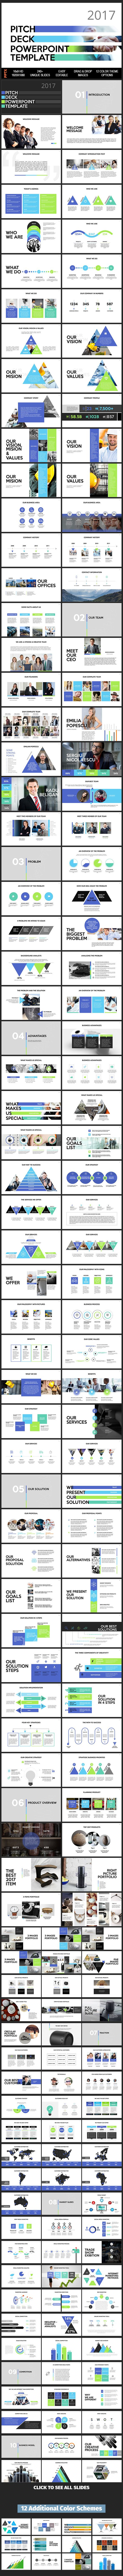 2017 PITCH DECK Powerpoint Presentation Template